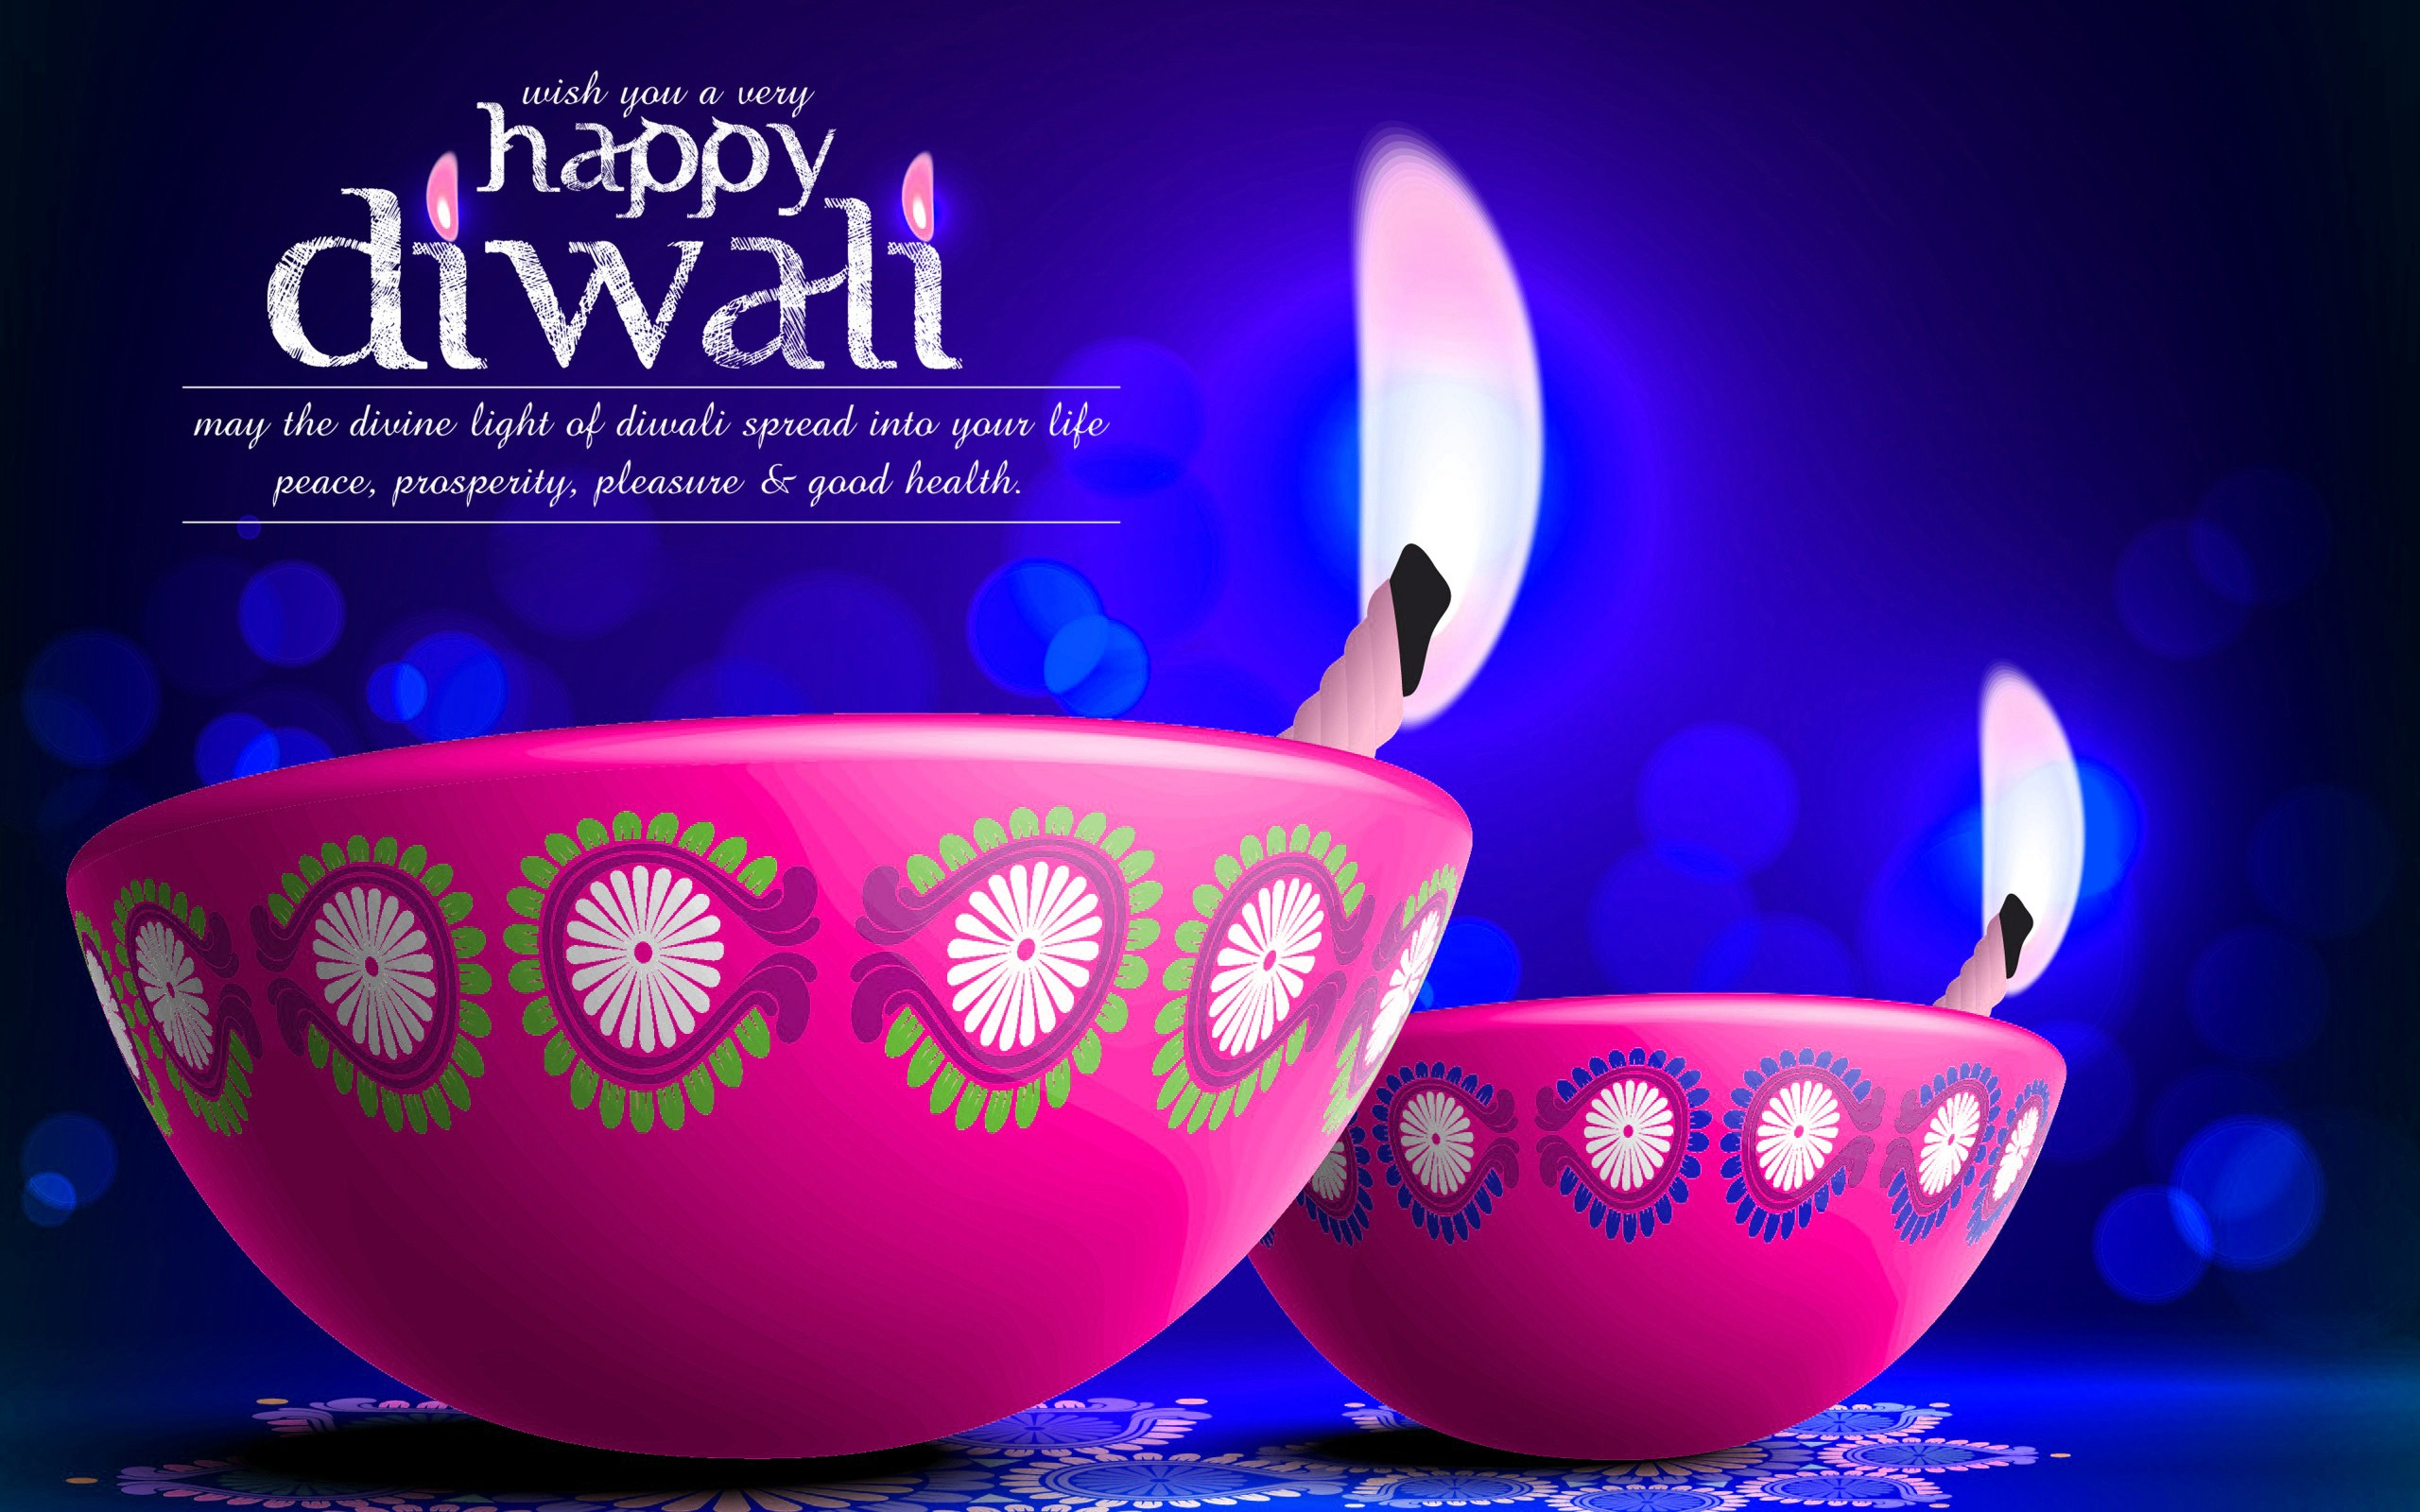 Happy Diwali 2020 images, quotes, wishes, SMS, greetings ...